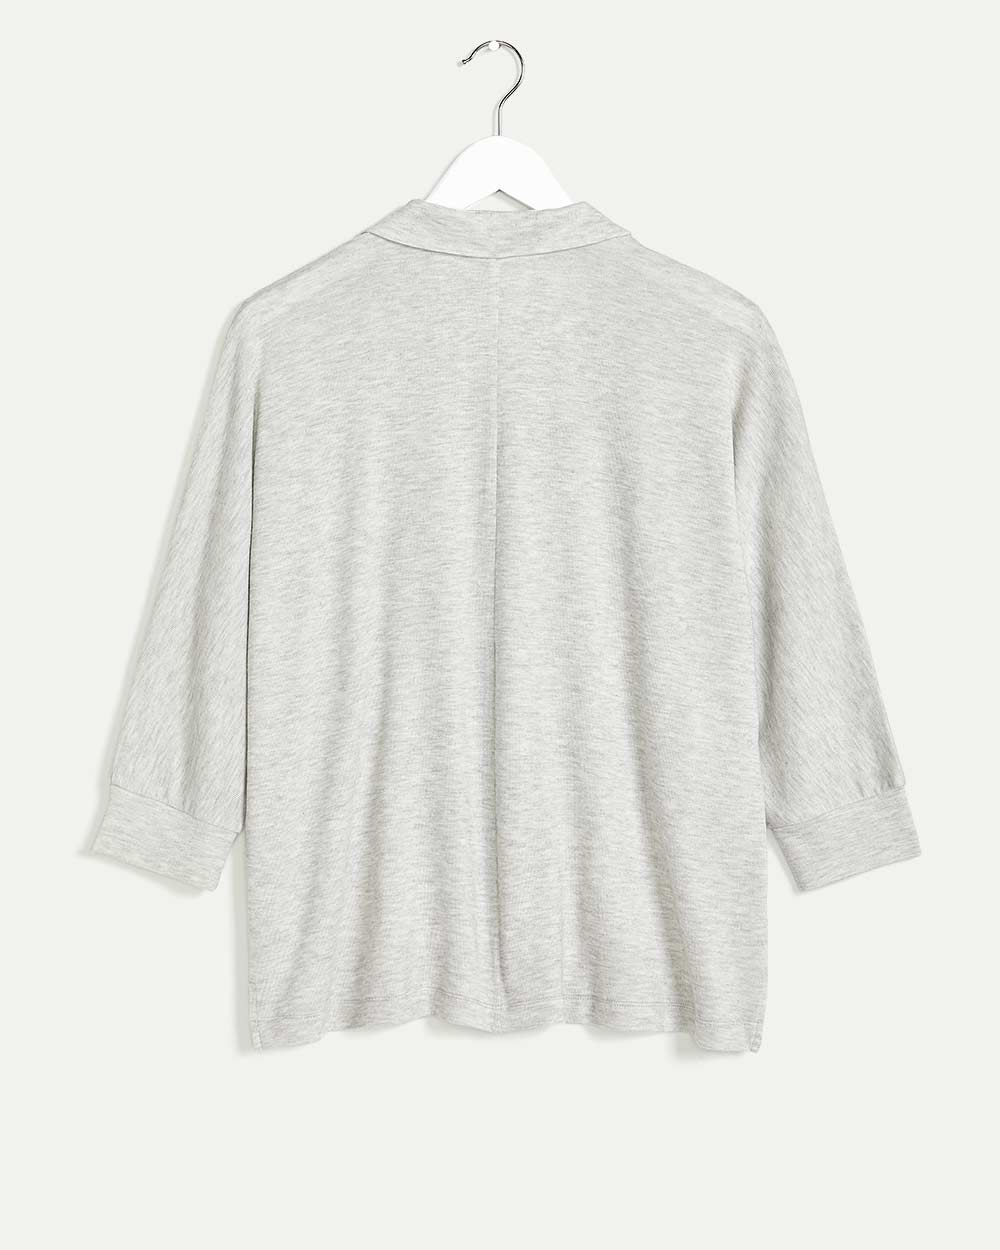 3/4 Dolman Sleeve Top with Johnny Collar